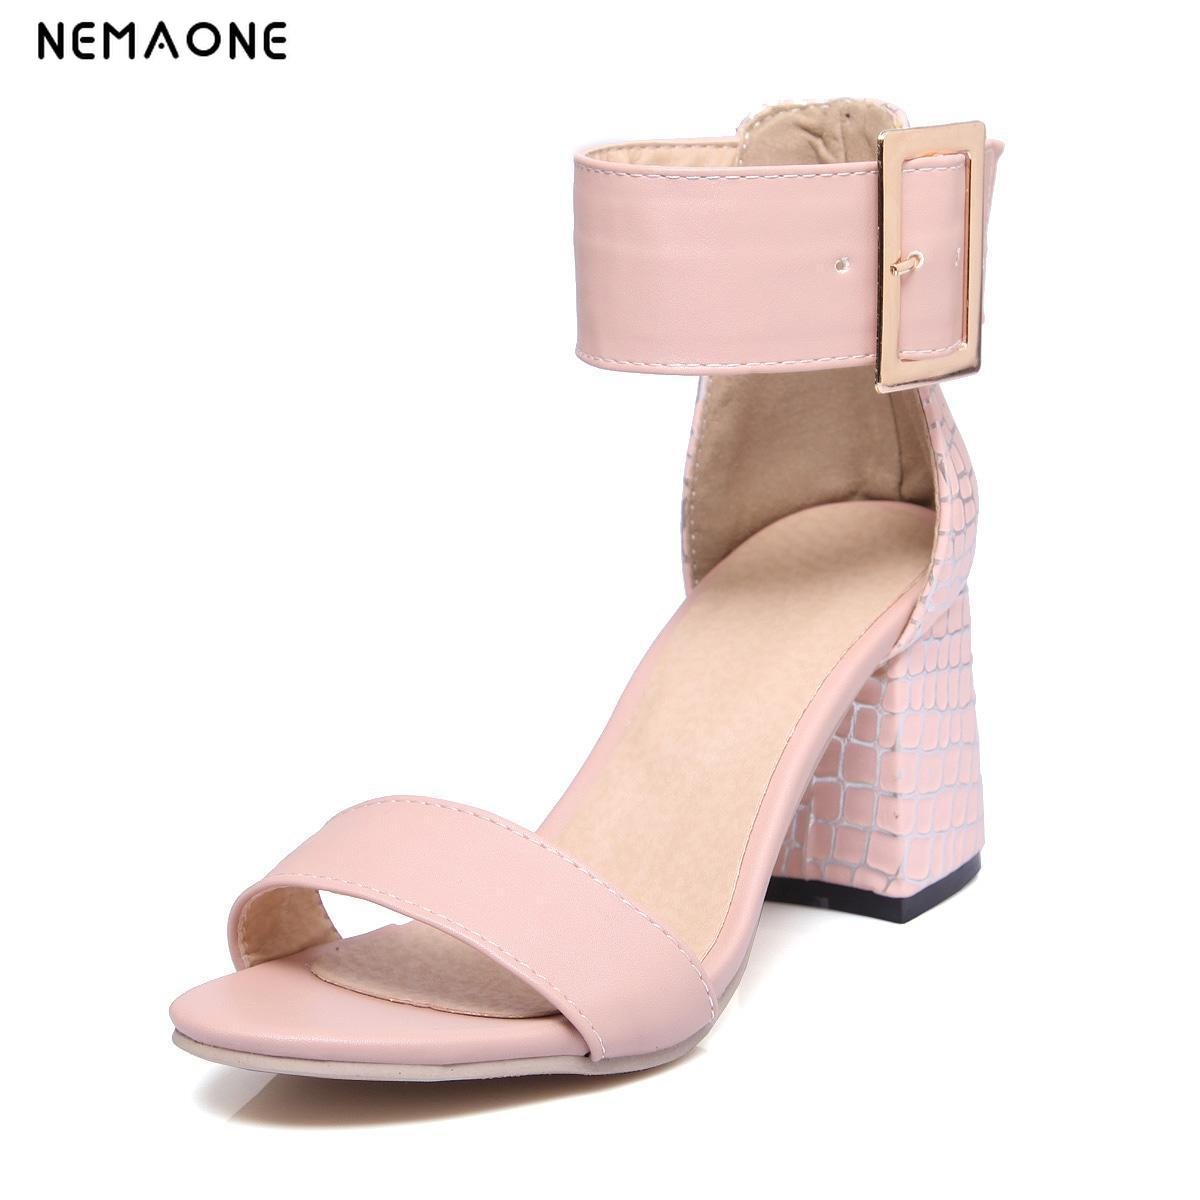 NEMAONE 2019 New elegant women shoes high heels sandals women summer shoes woman sexy ankle strap ladies shoes white pink blue nemaone new flat women slippers suede leather sandals woman summer style pearl beath women shoes black apricot pink green